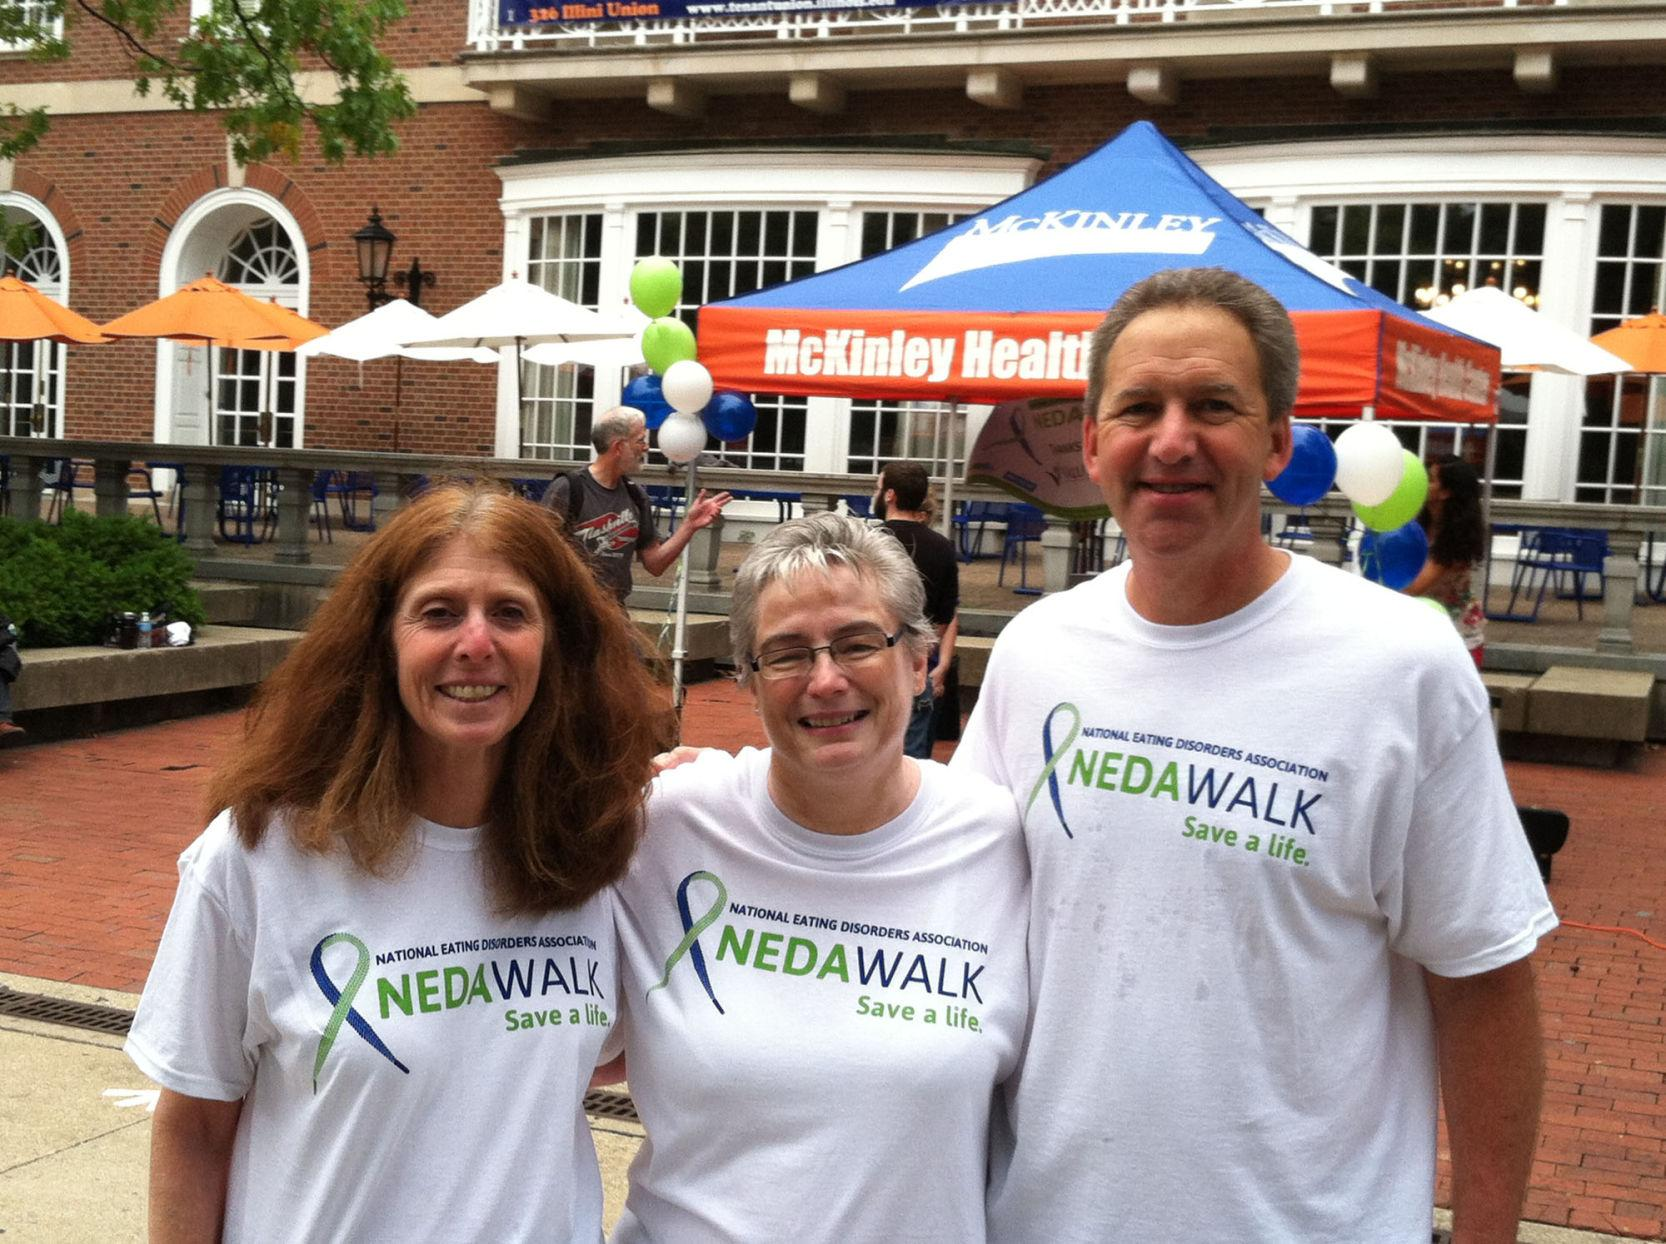 Attendants from the previous NEDA WALK in 2013. (From left to right: Lori Tabakin; Connie Langellier, clinical counselor at the University's Counseling Center; Scott Tabakin, ValueOptions Chief Financial Officer and guest speaker.)